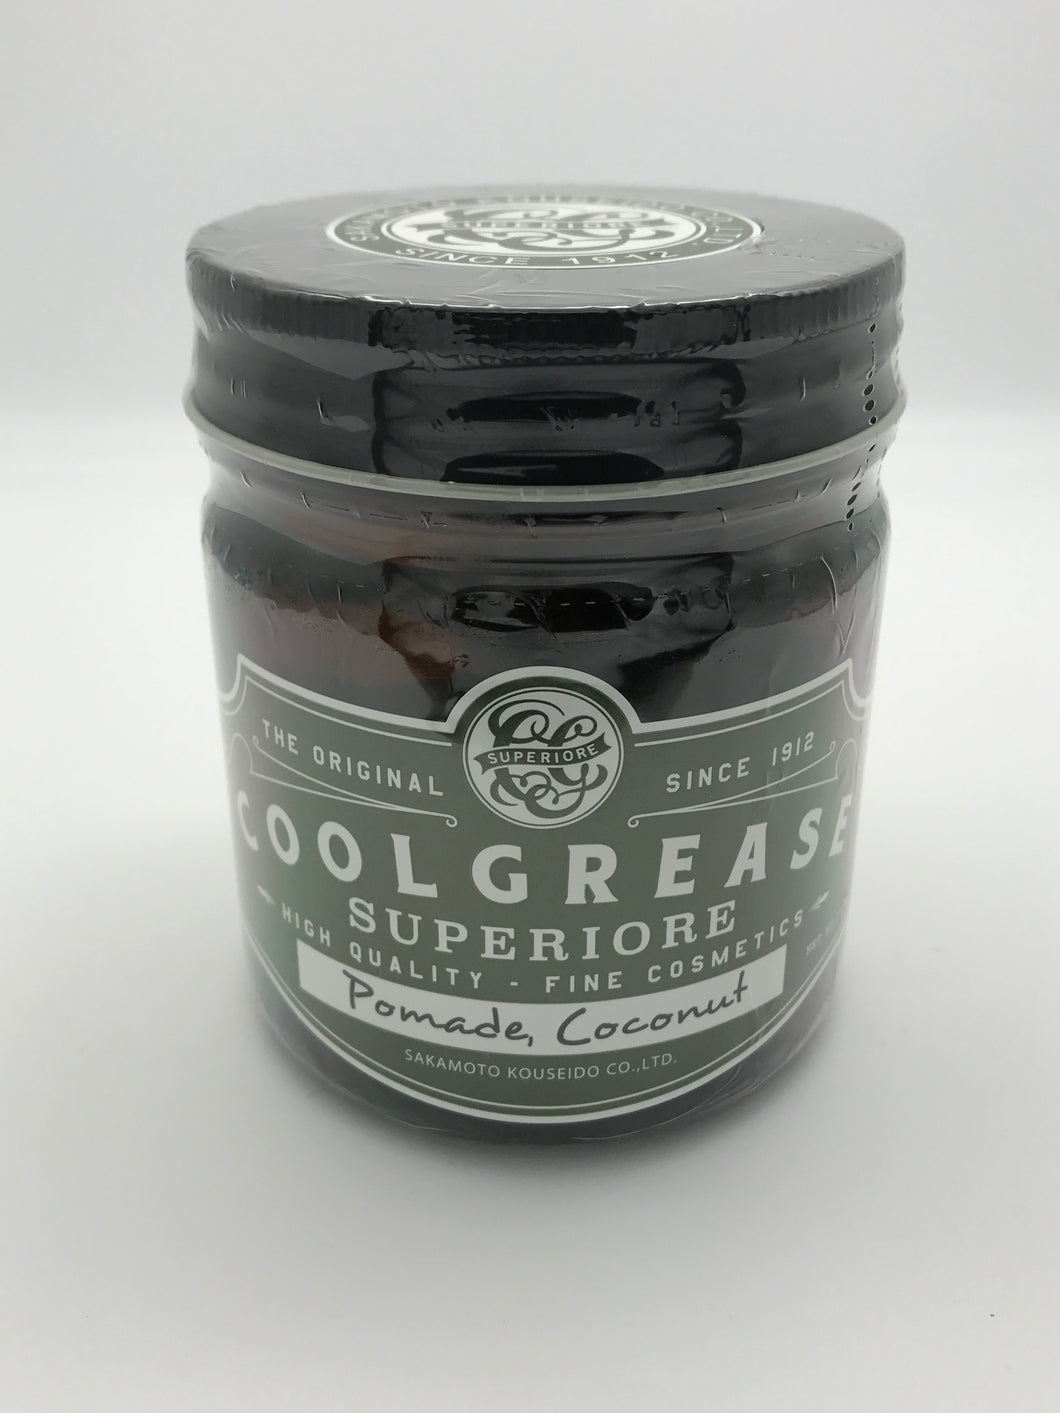 Cool Grease Superior Pomade Coconut 7oz